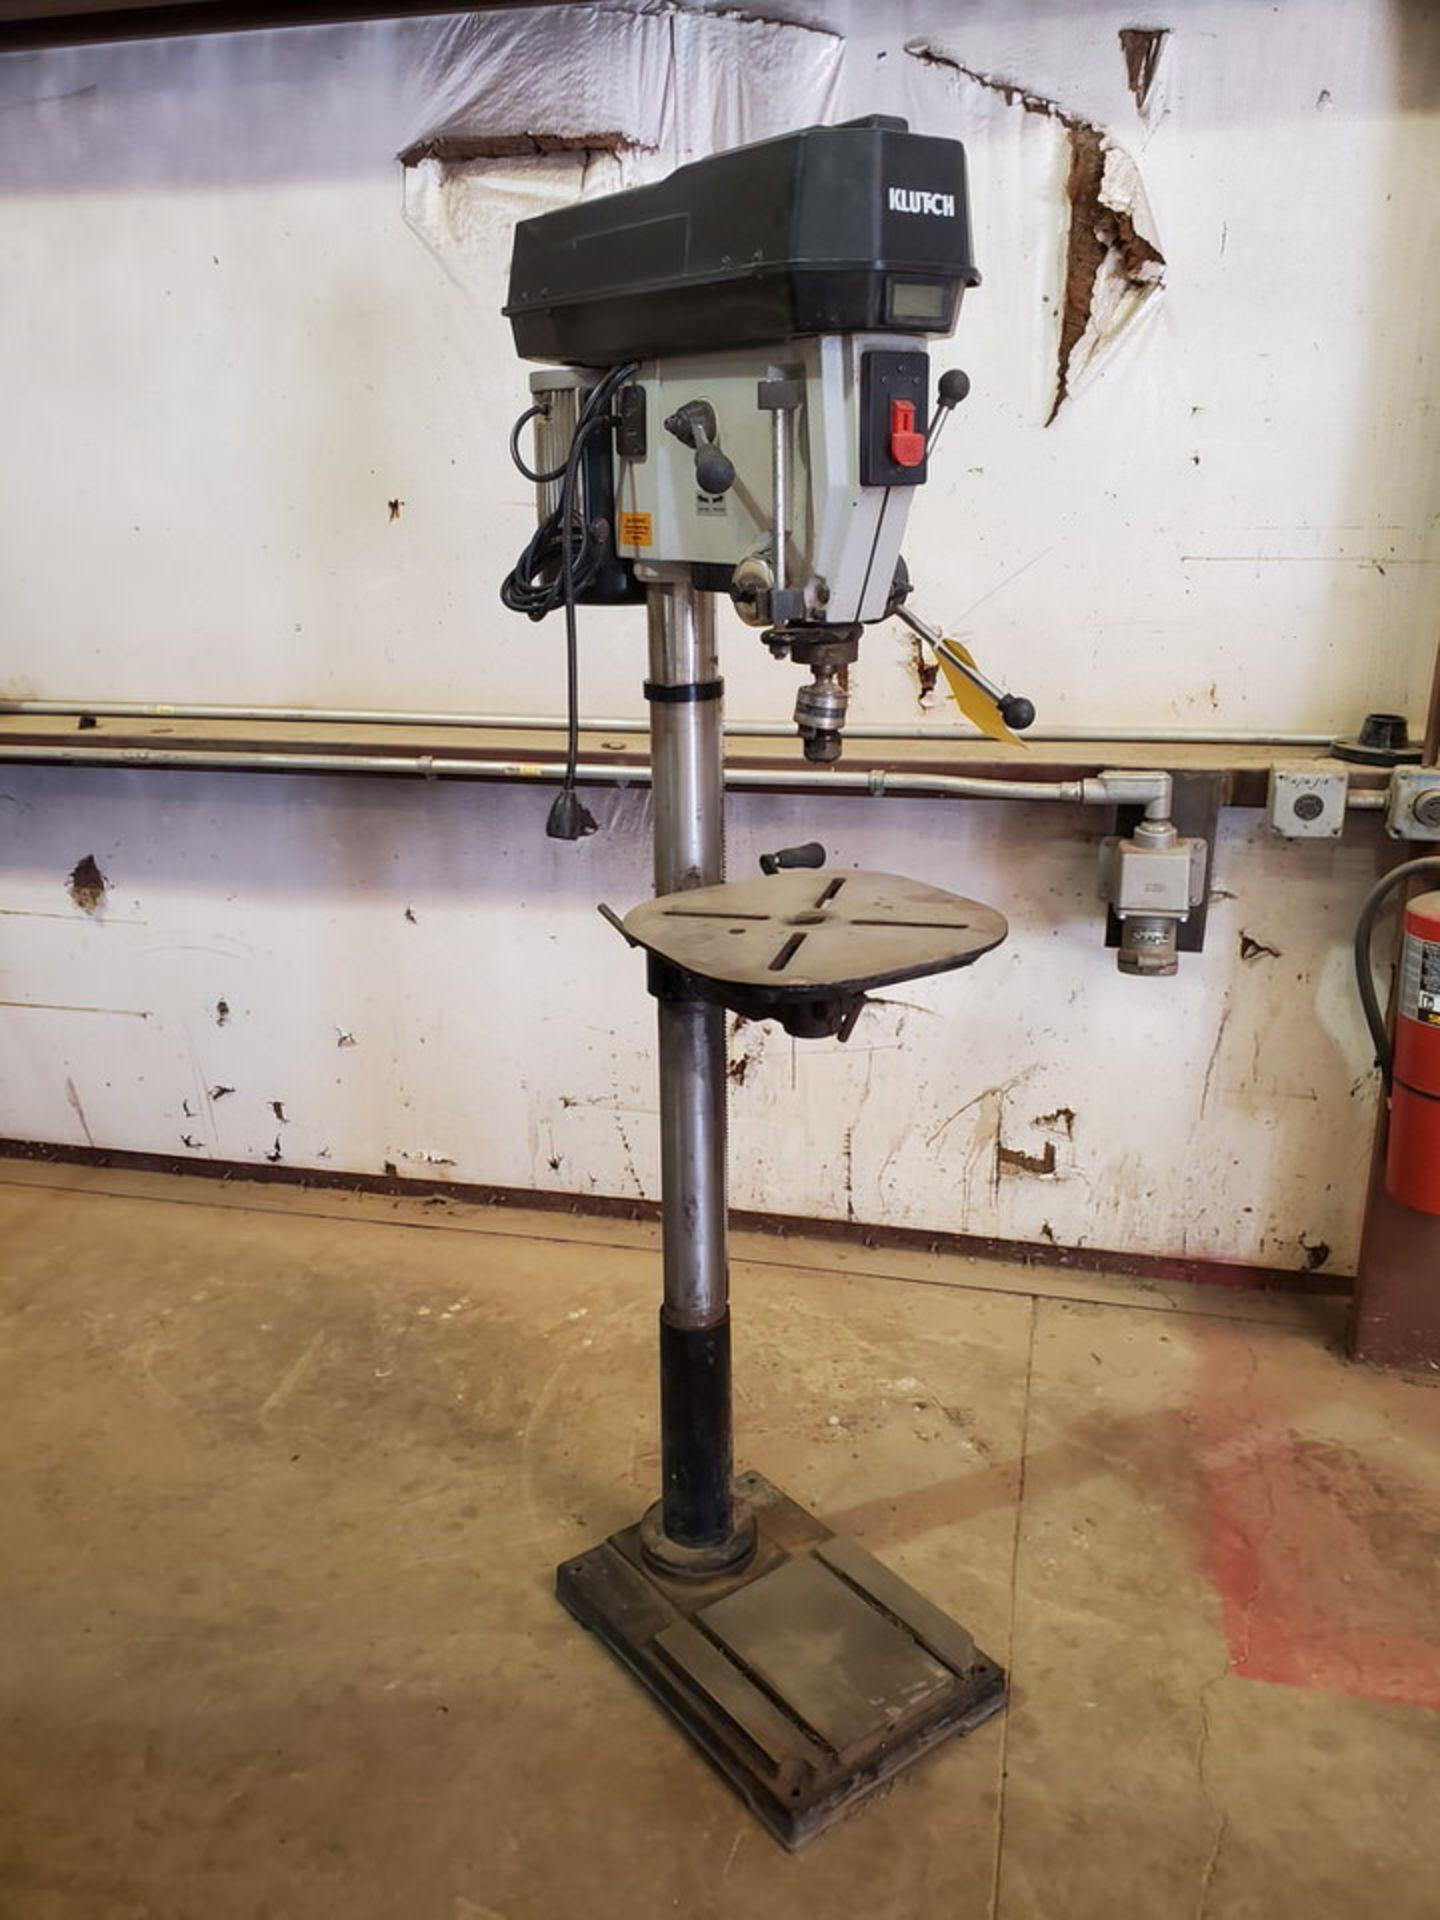 "Klutch 17"" Drill Press 120V, 60HZ,1-1/2""HP, Swing: 17-23/32"", 600-2400RPM, 6""-Travel; 14"" Dia Work - Image 2 of 9"